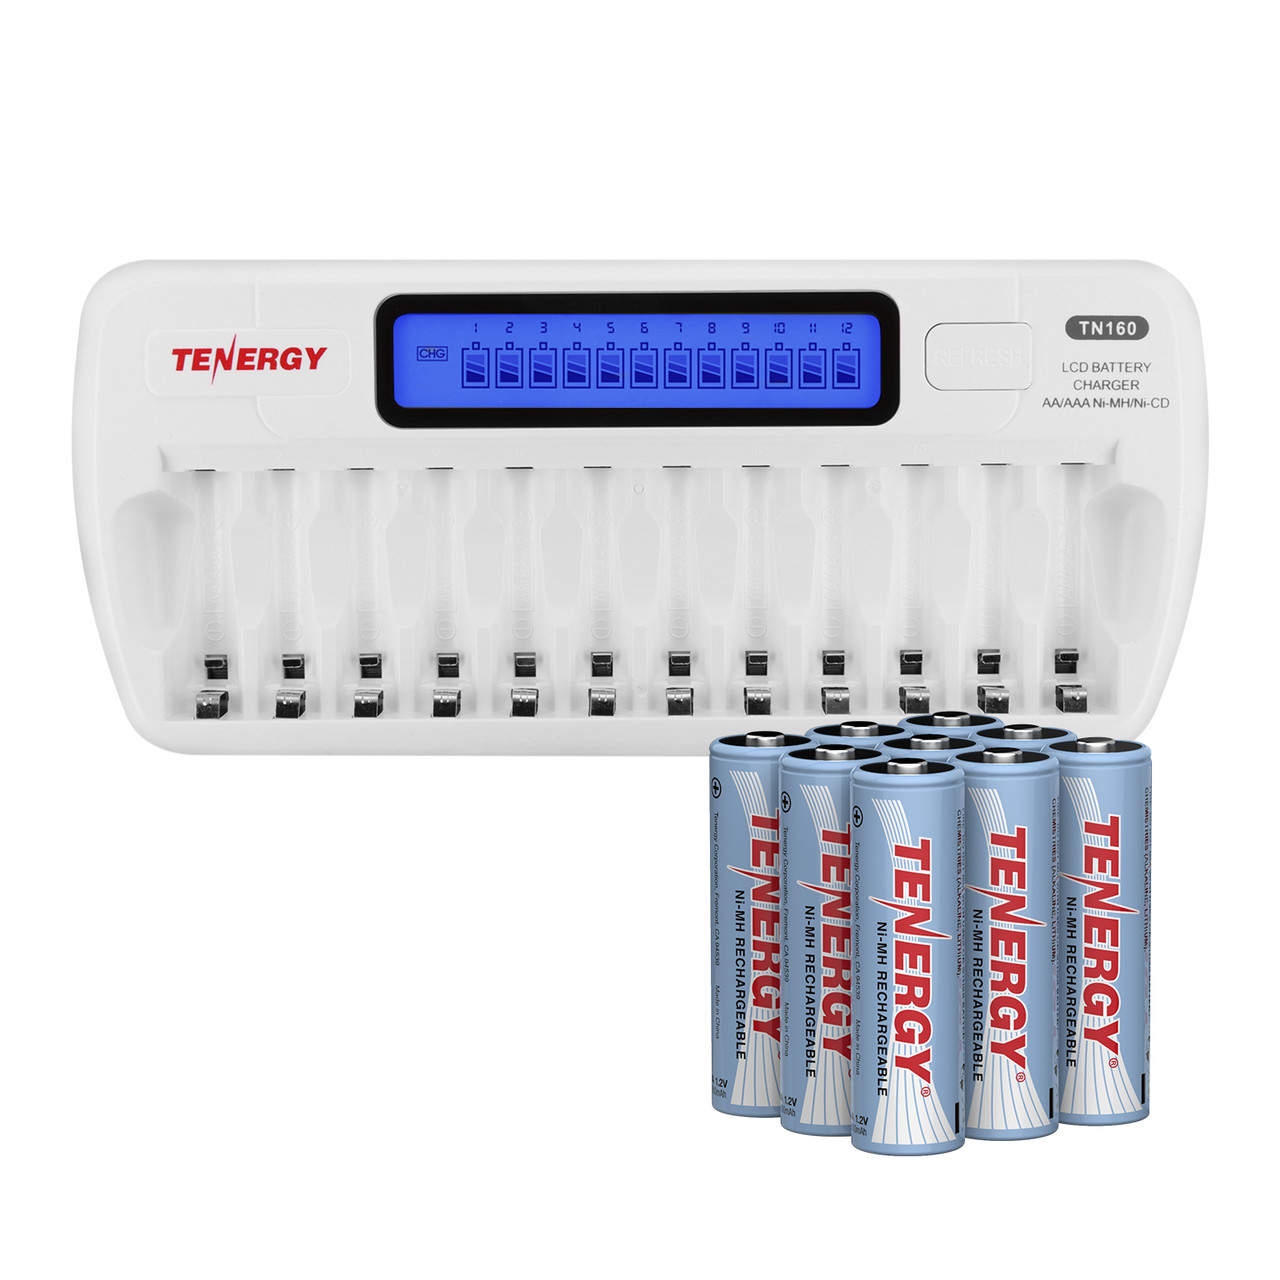 Tenergy TN160 12-Bay AA//AAA Battery Charger 24 AAA NiMH Rechargeable Batteries